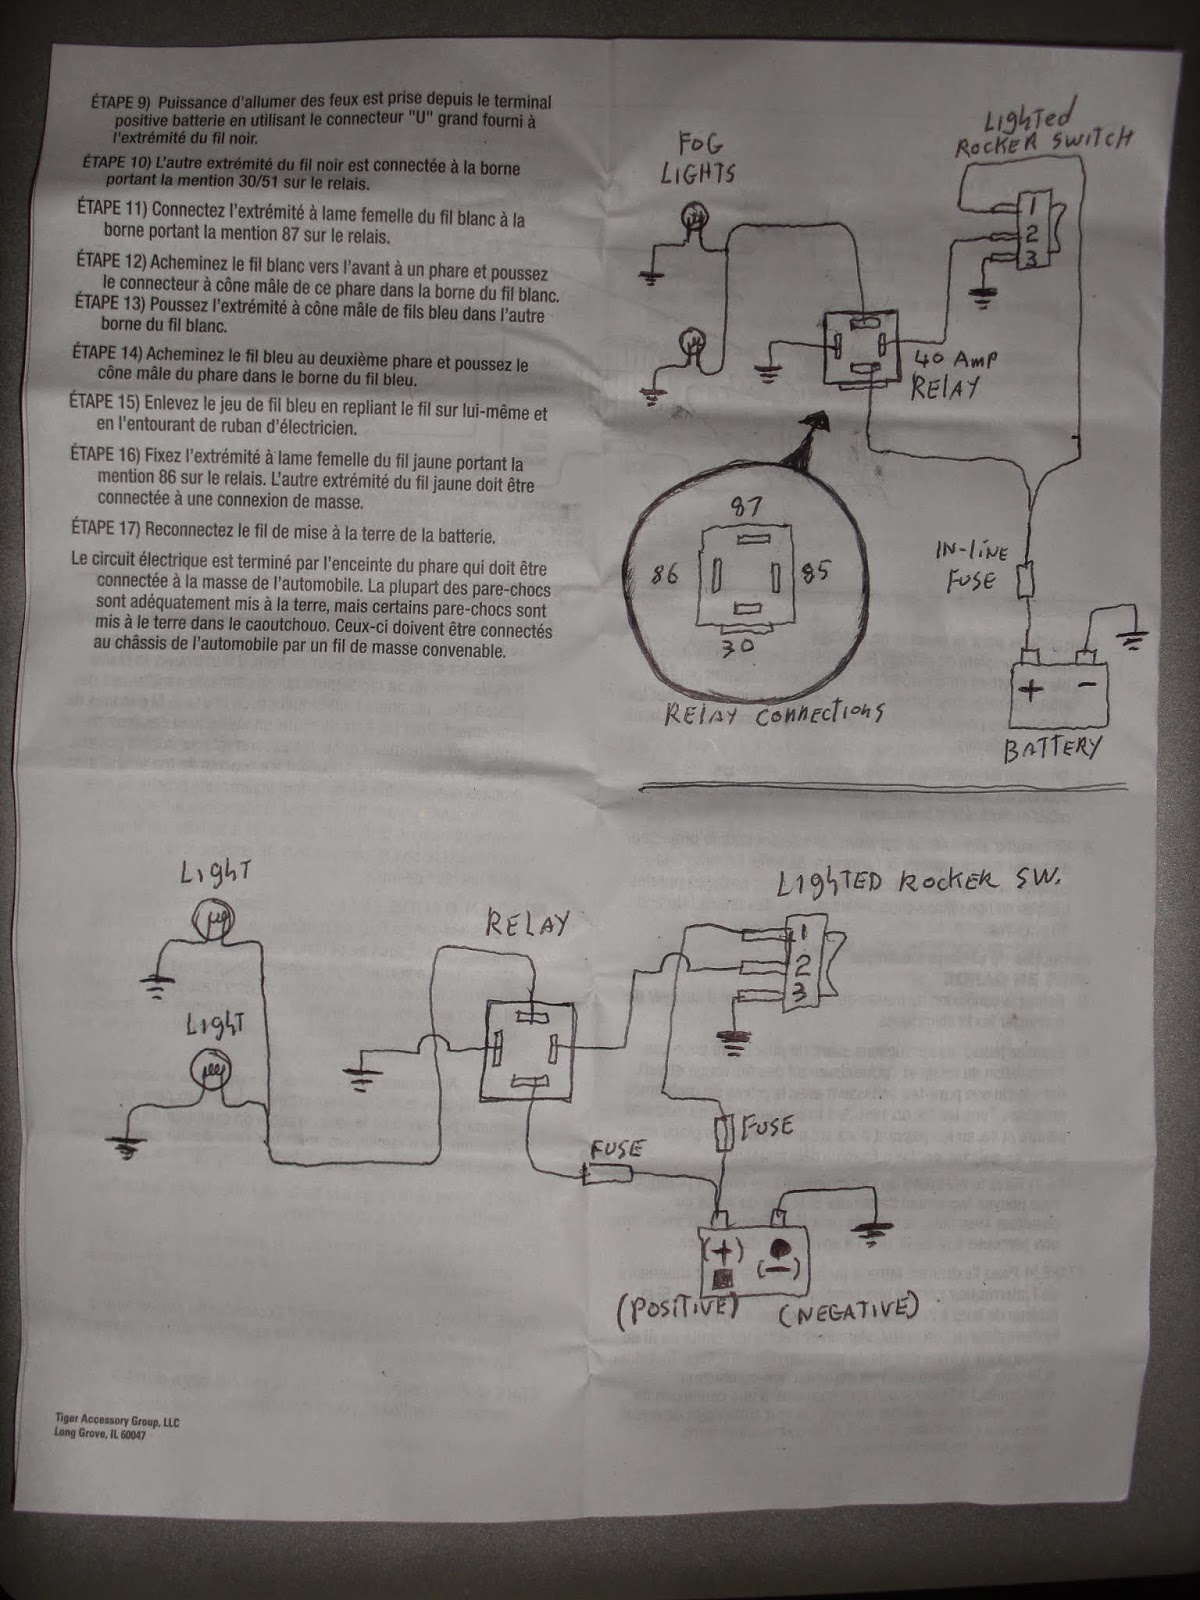 My Knight Rider 2000 Project Diagrams And Schematics Negative Trigger Fog Light Relay Wiring Diagram Lights Do Not Say Anything About Needing A You Otherwise Will Just Keep Blowing Switches Or It Wont Work